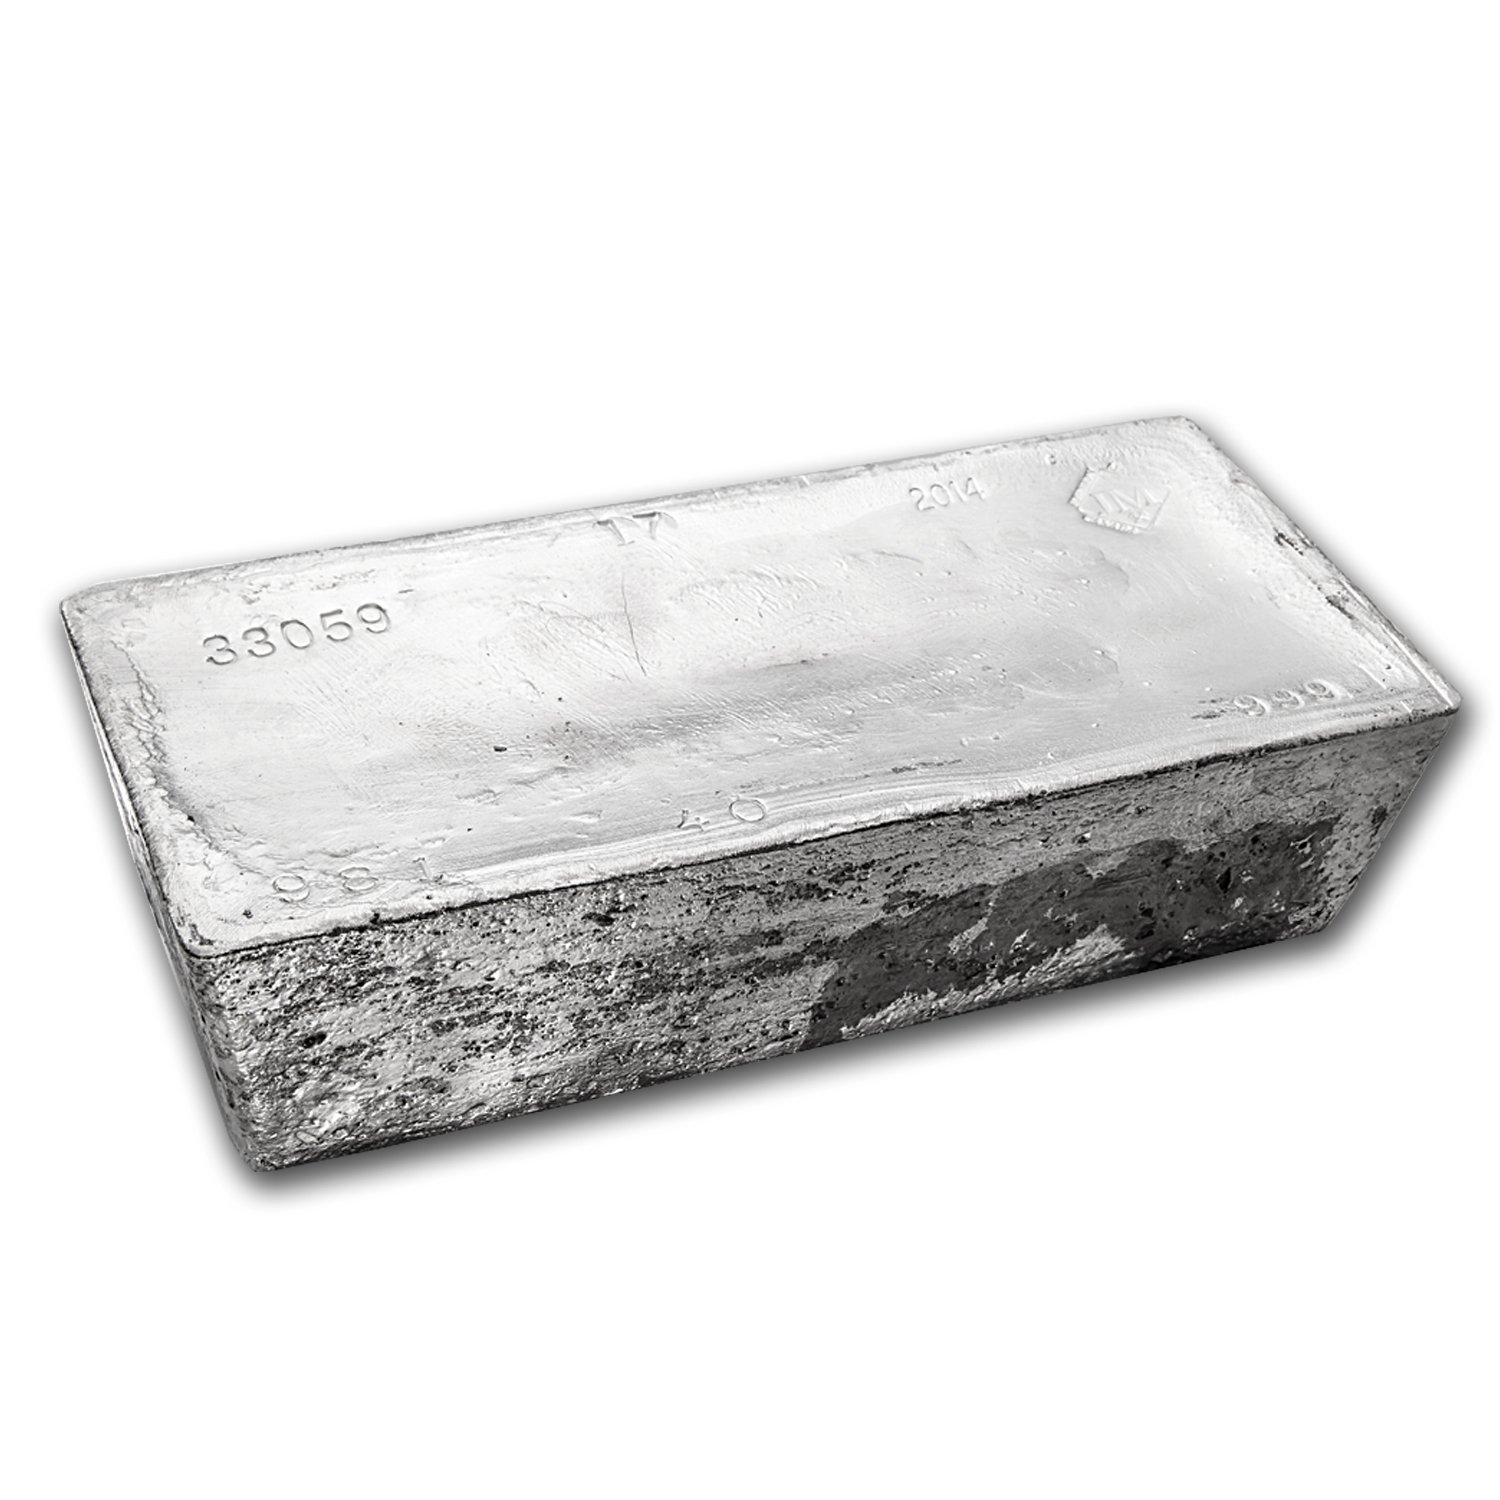 961.60 oz Silver Bar - Johnson Matthey